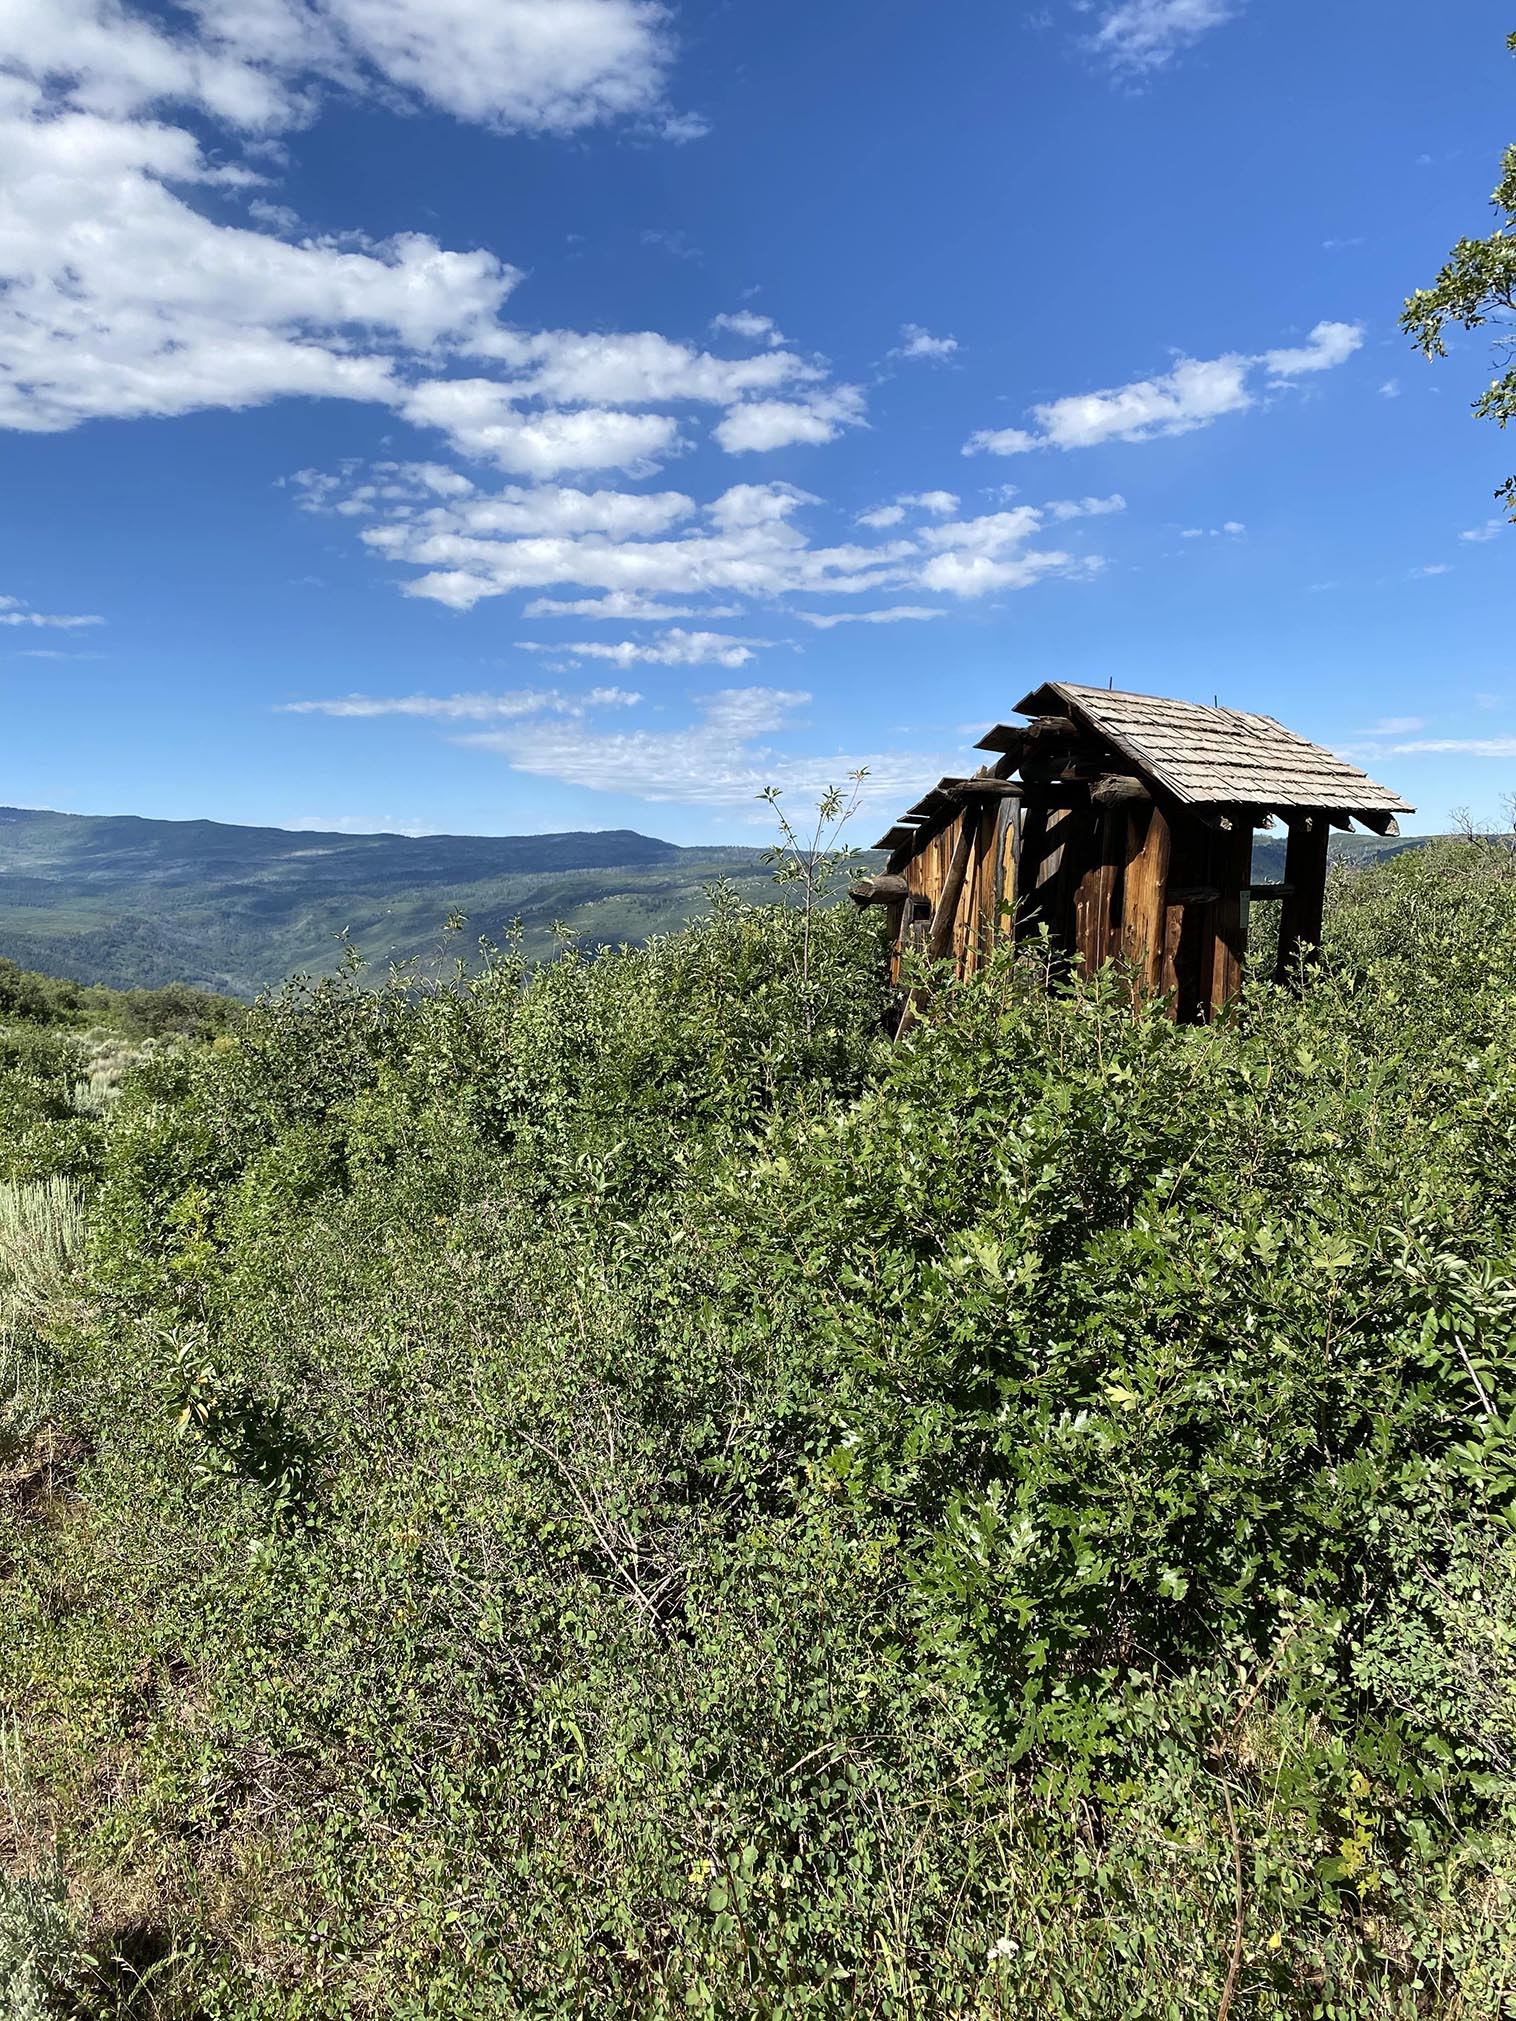 Lookout Mountain Picnic Area, CO 2021